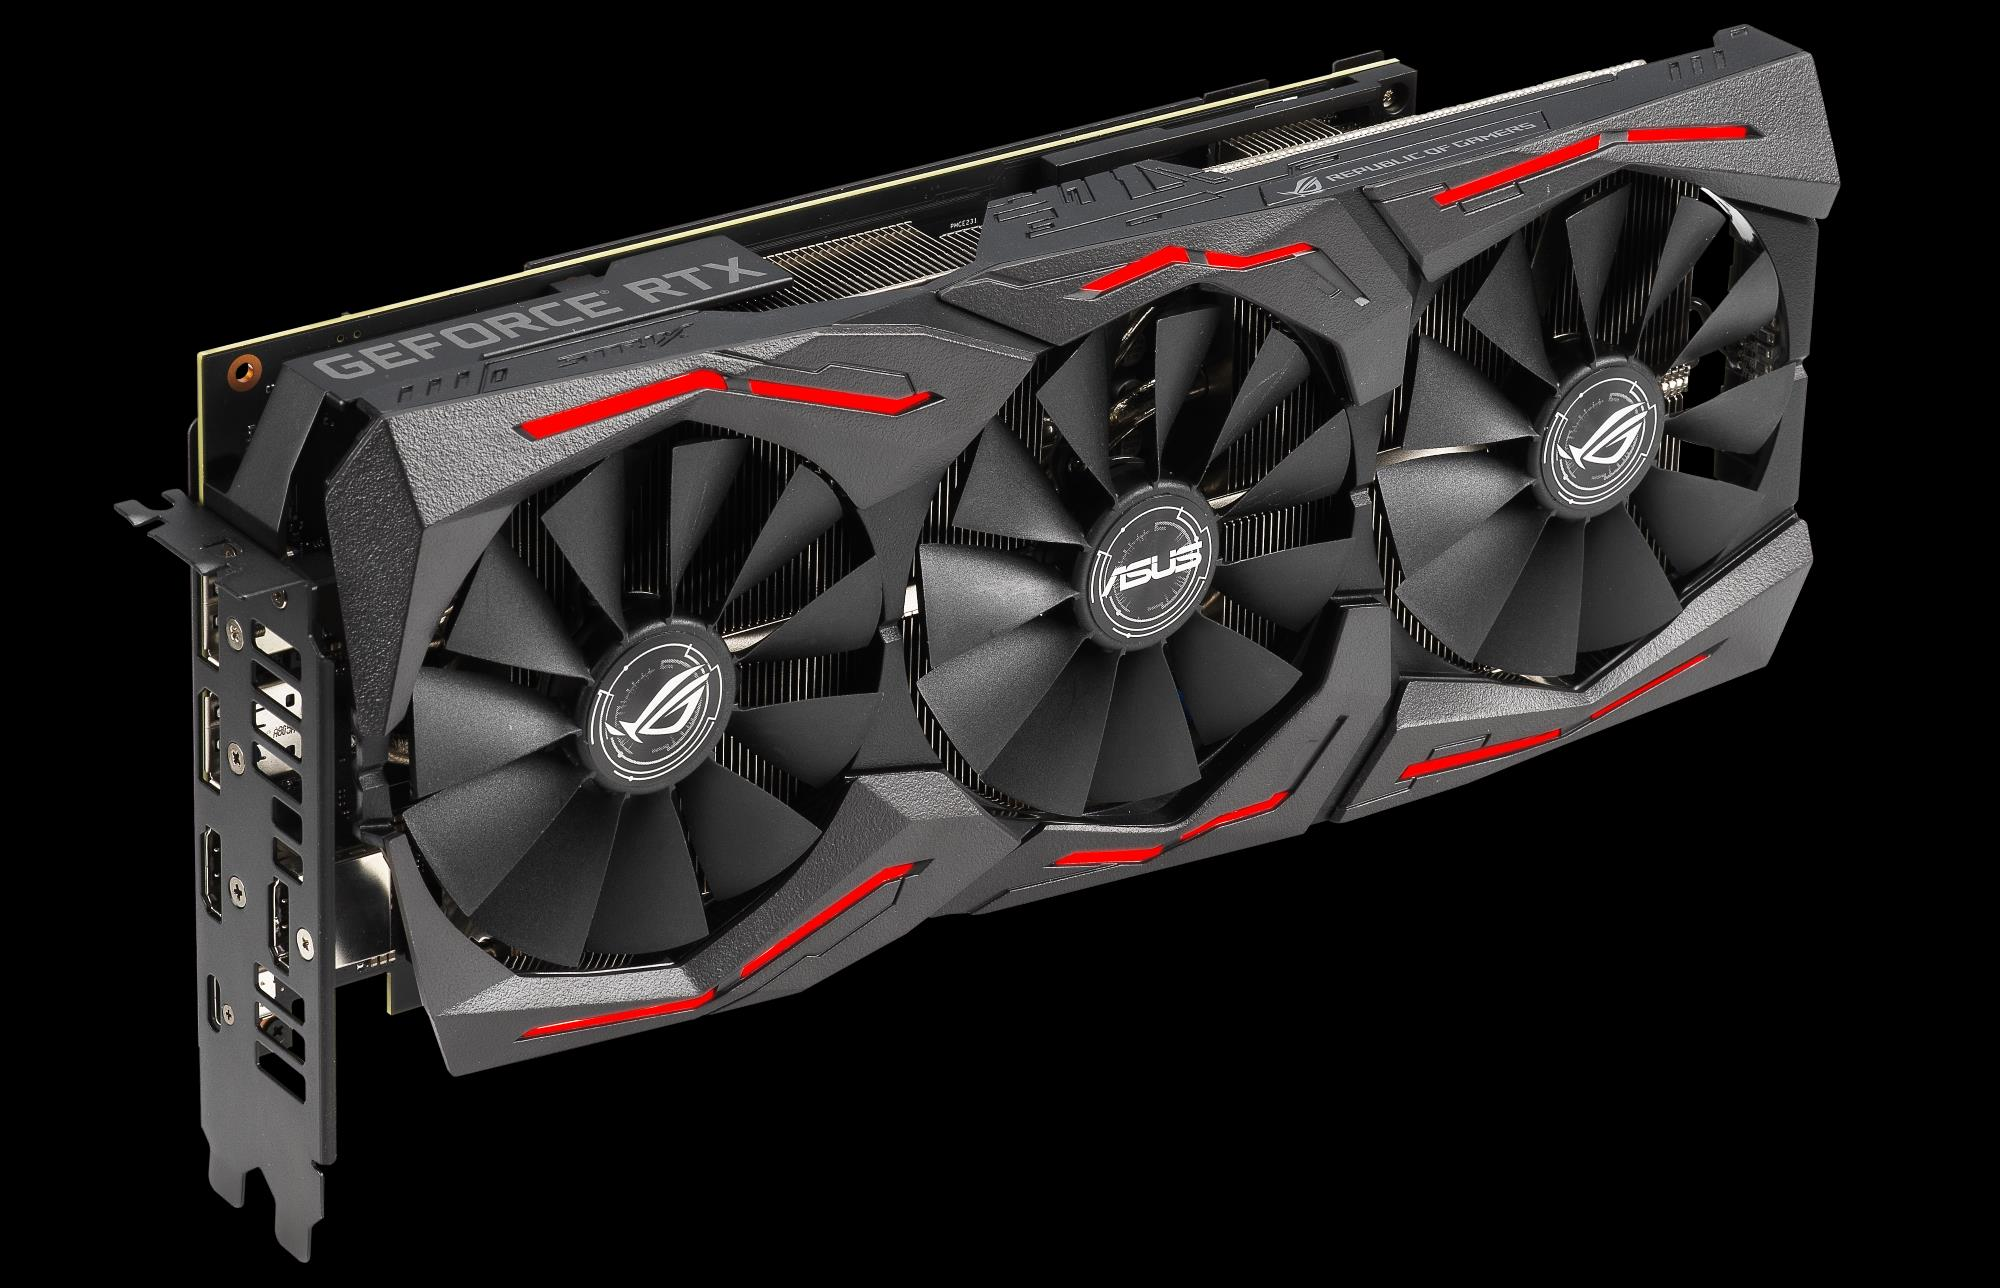 ROG-STRIX-RTX2060S-A8G-EVO-GAMING ASUS ROG Strix GeForce RTX 2060 Super Advanced Overclocked EVO 8G GDDR6 HDMI DisplayPort USB Type-C Gaming Graphics Card